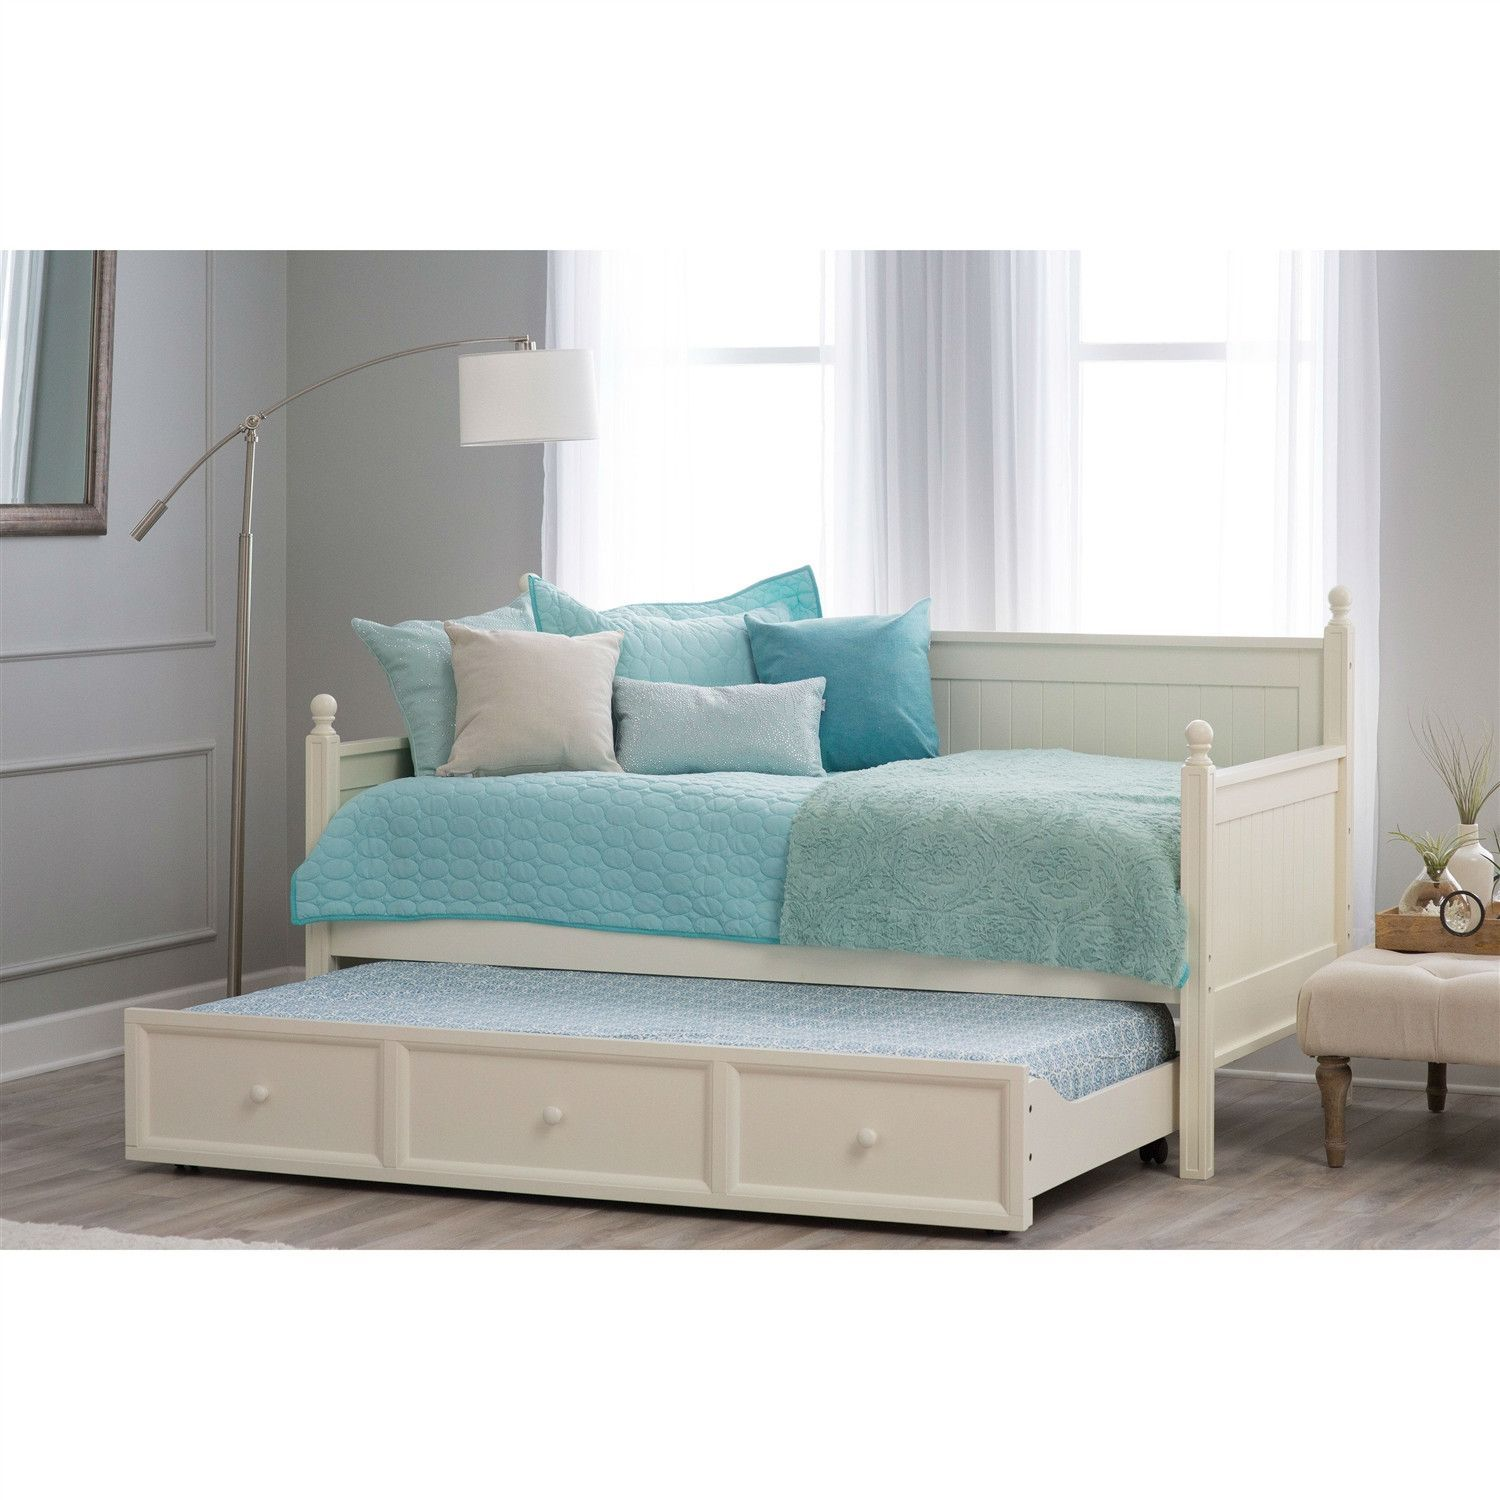 - Twin Size White Wood Daybed With Pull-Out Trundle Bed White Wood